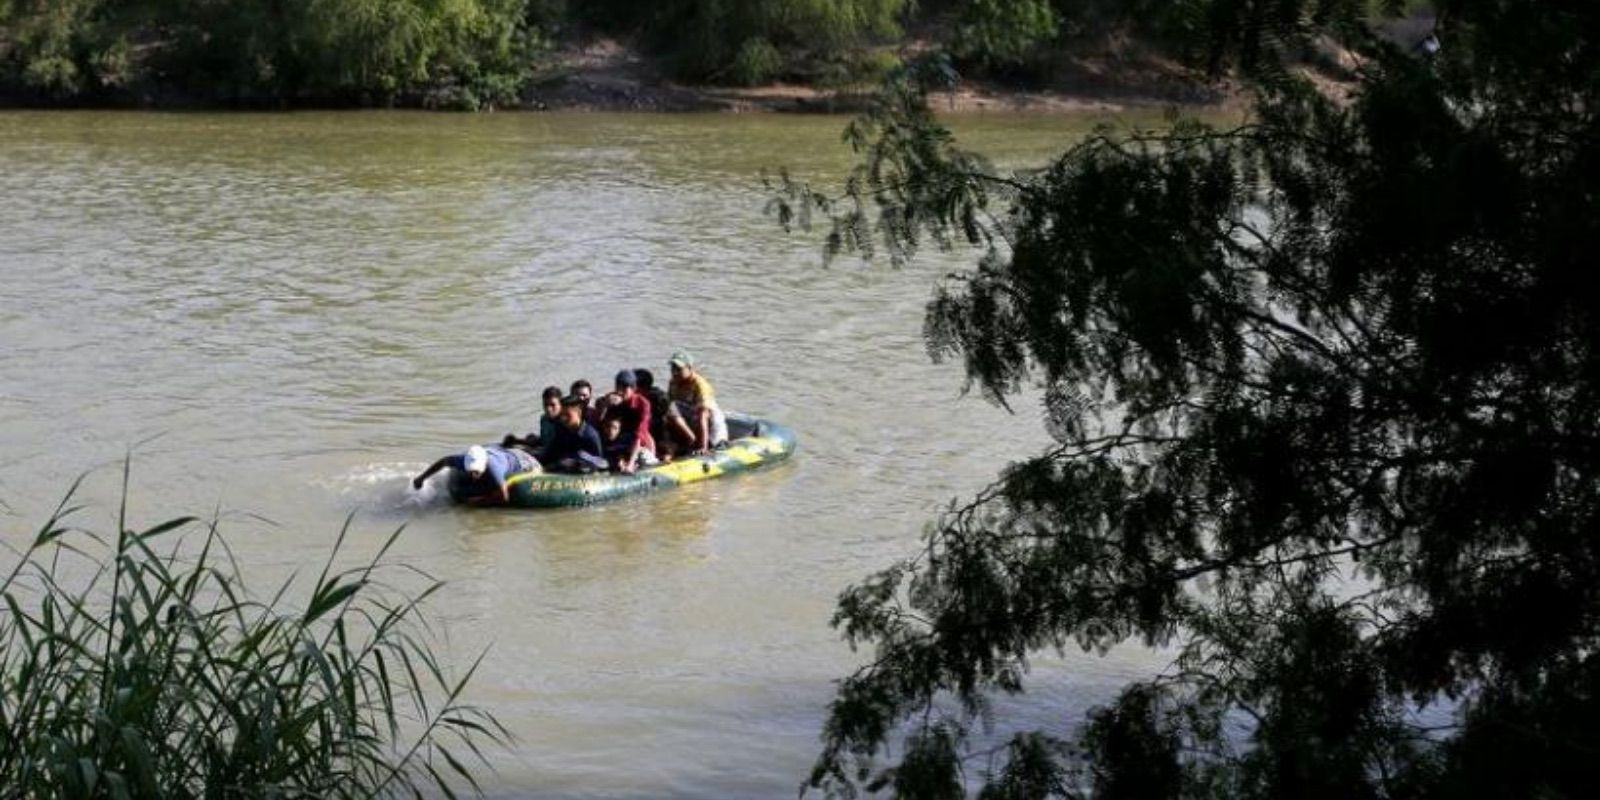 9-year-old girl drowns trying to reach US amid Biden border crisis